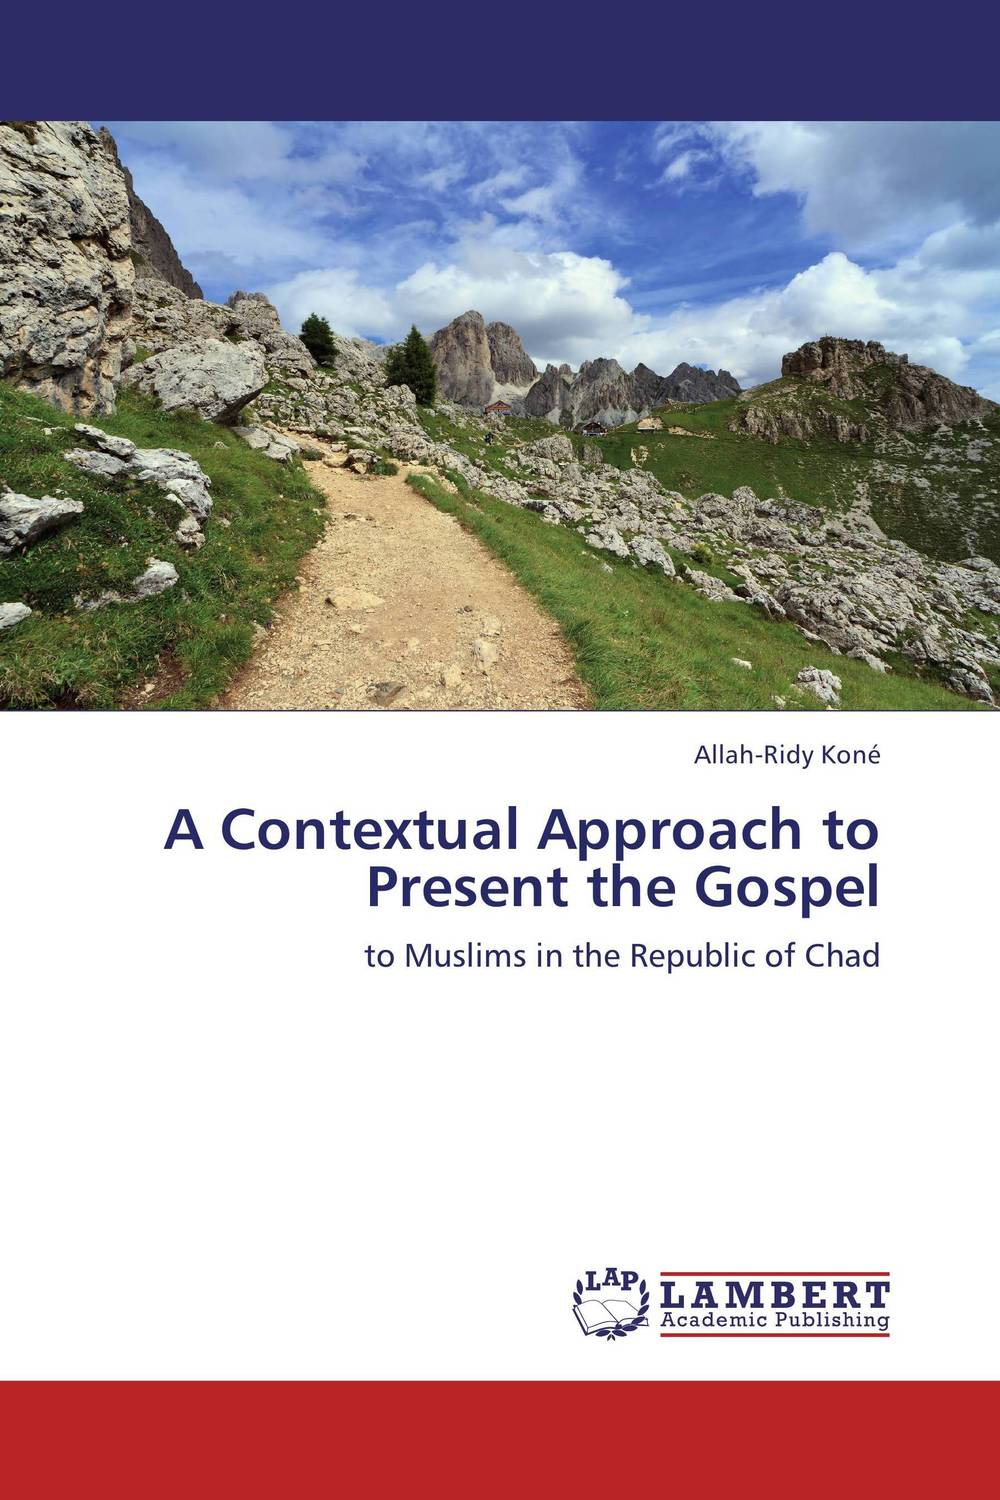 A Contextual Approach to Present the Gospel